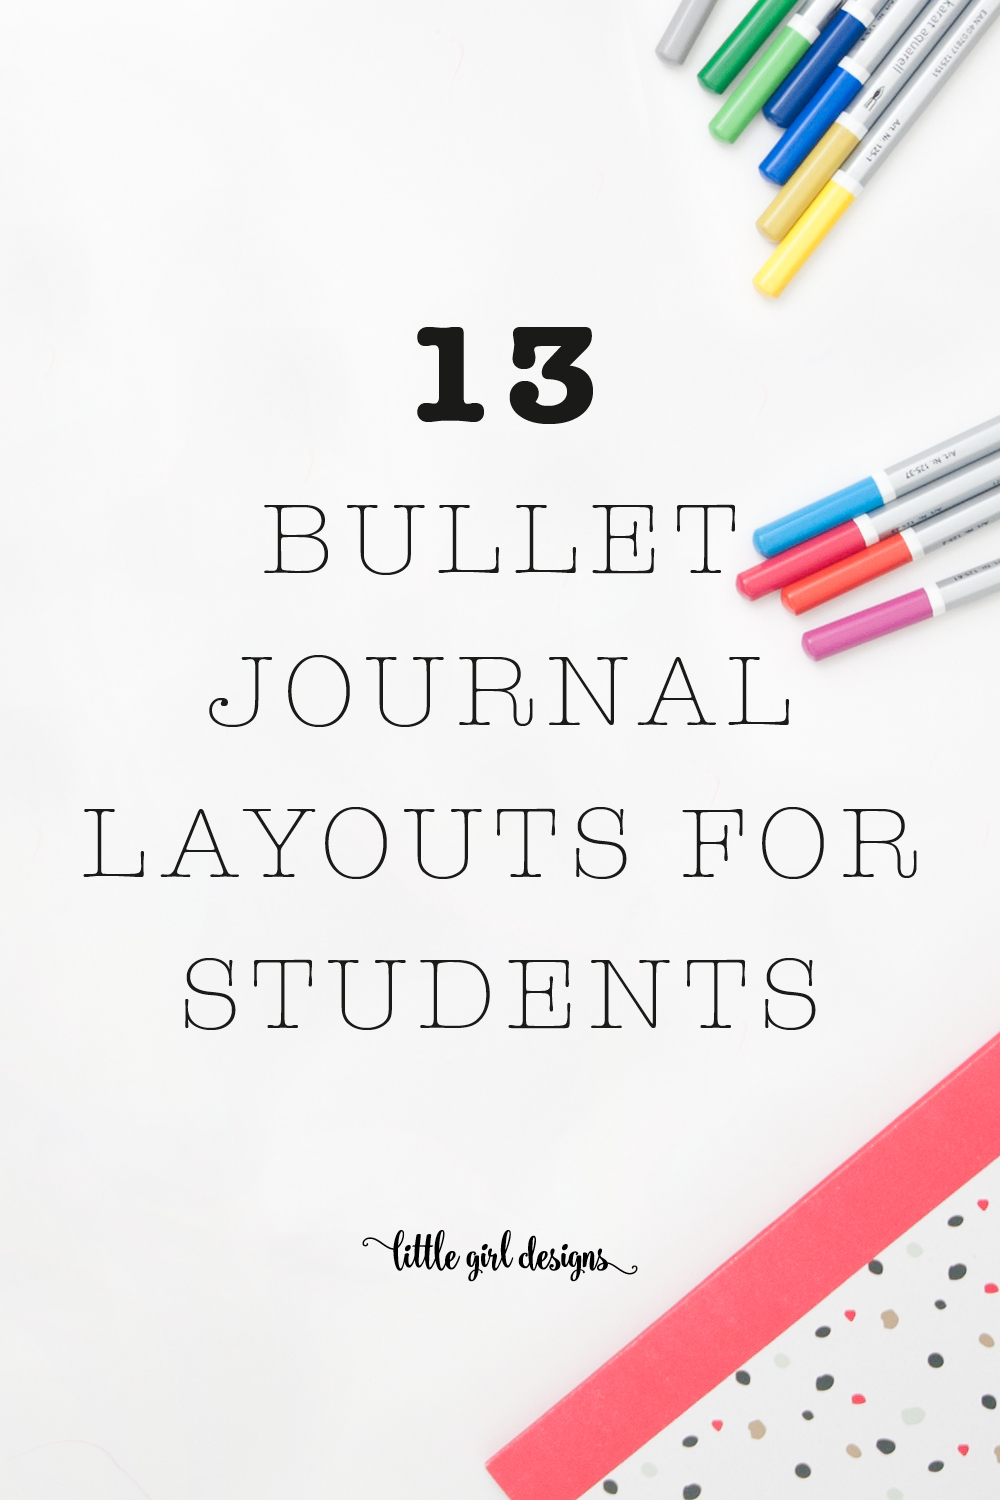 Get organized and inspired by these bullet journal layouts created by students! Use a bullet journal to take notes, journal, keep track of goals, and more!